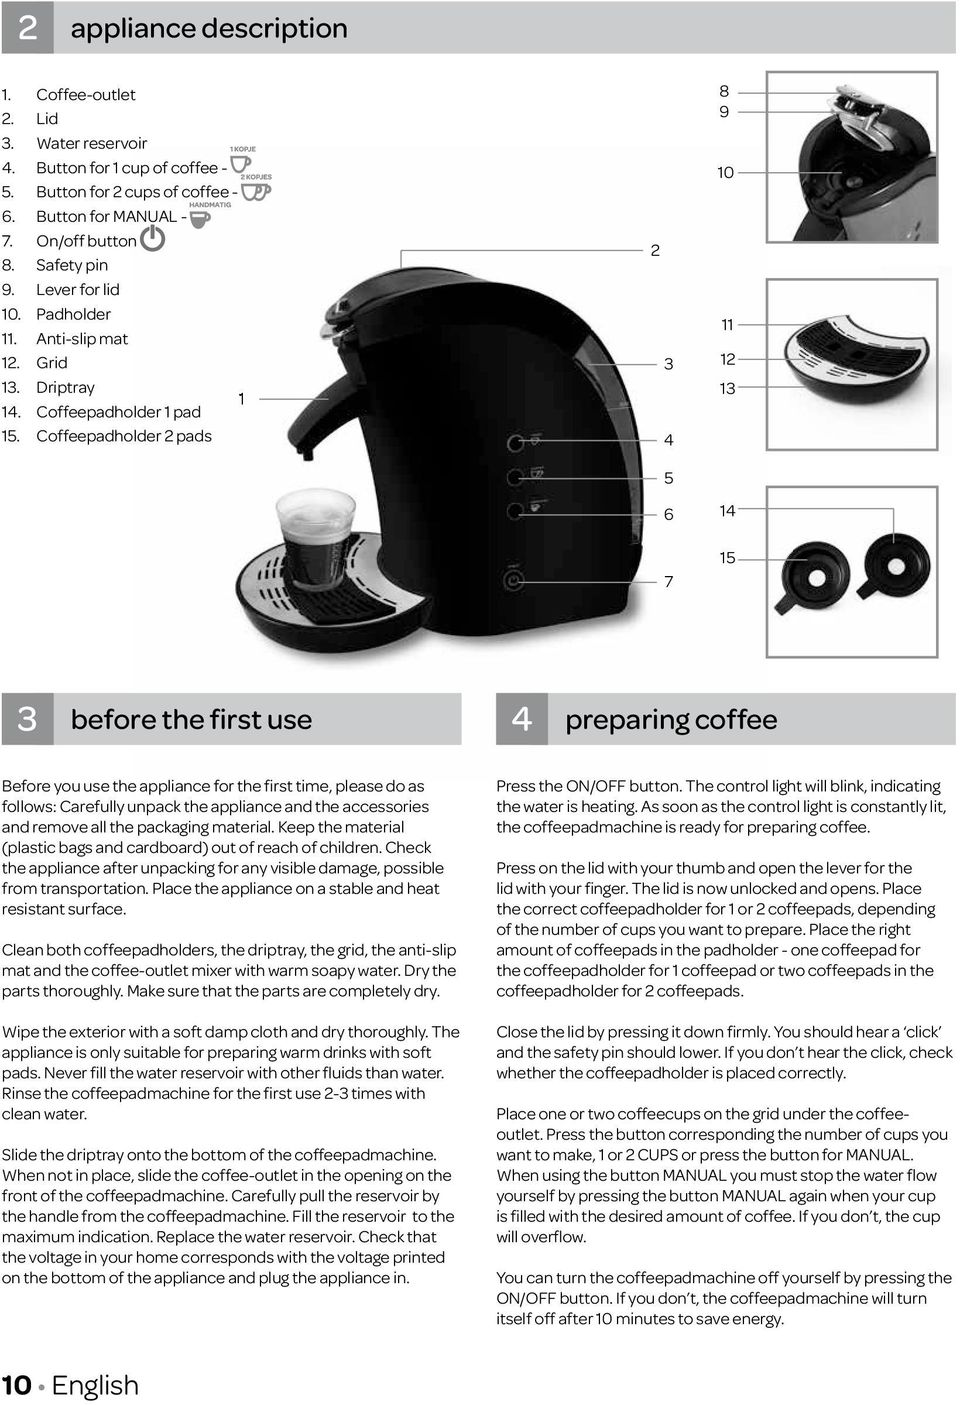 Coffeepadholder 2 pads 1 2 3 4 5 6 7 8 9 10 11 12 13 14 15 3 before the first use 4 preparing coffee Before you use the appliance for the first time, please do as follows: Carefully unpack the